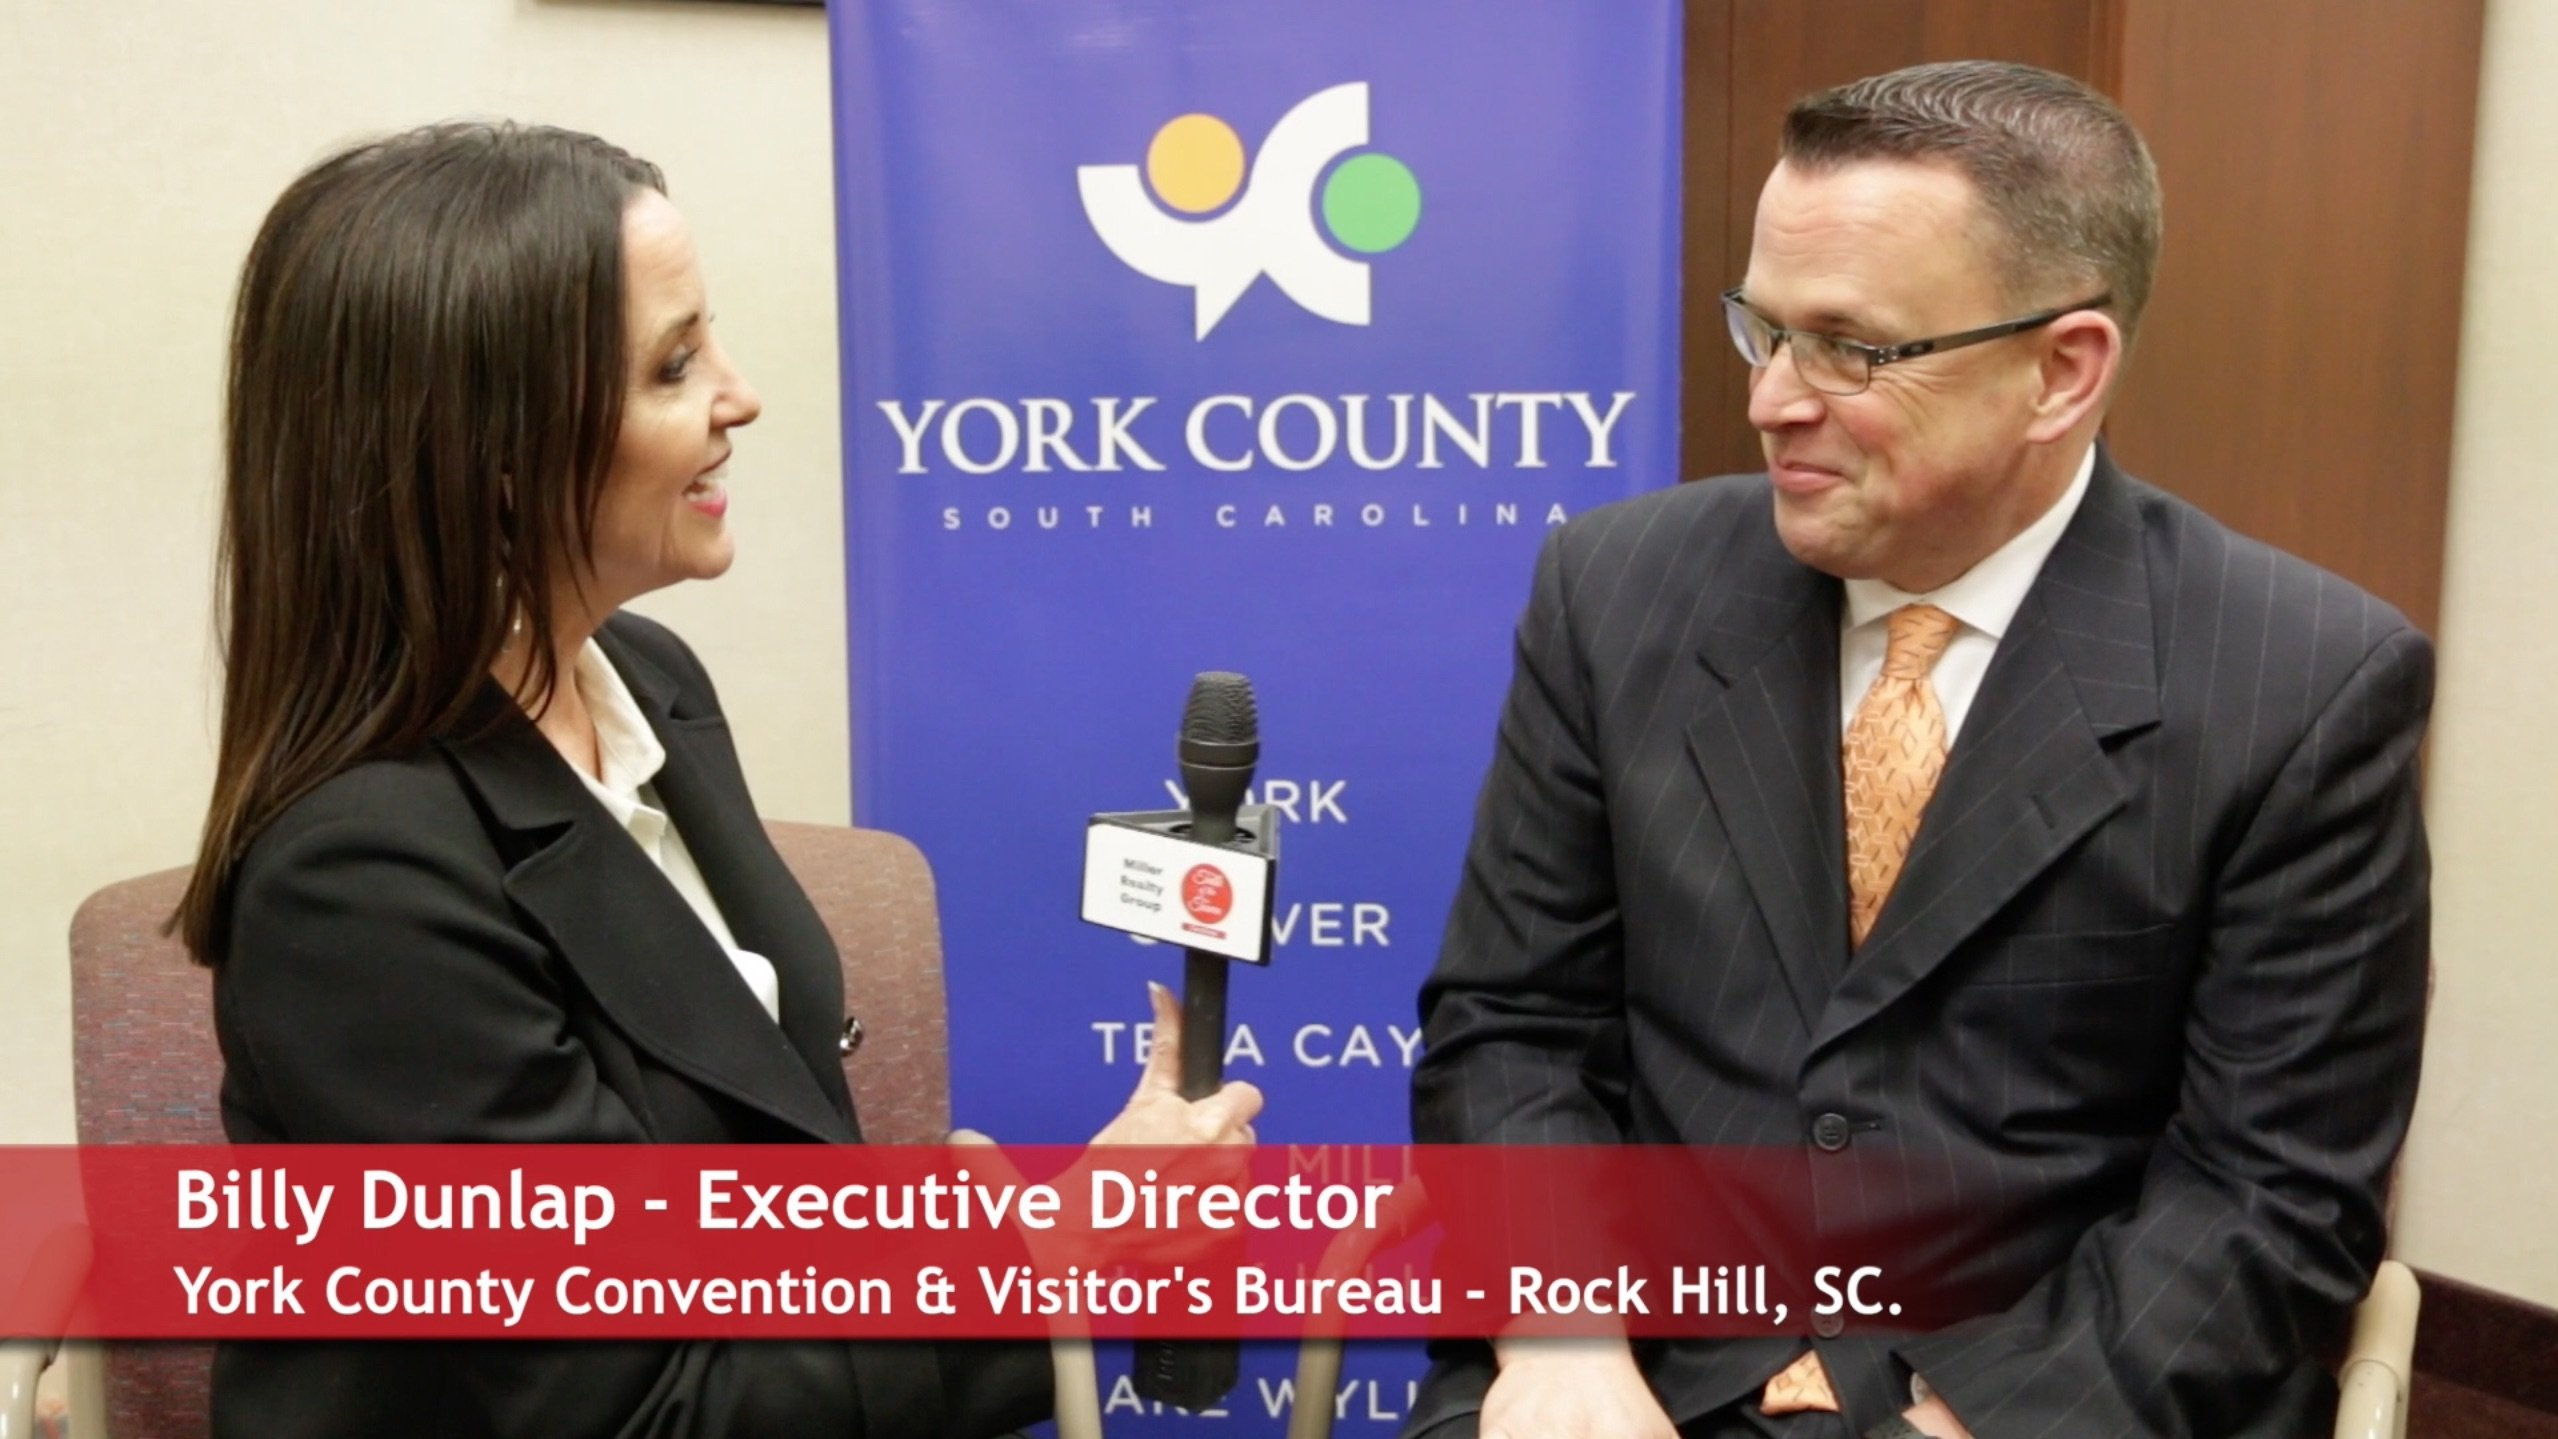 Changes At The York County Convention & Visitor's Bureau